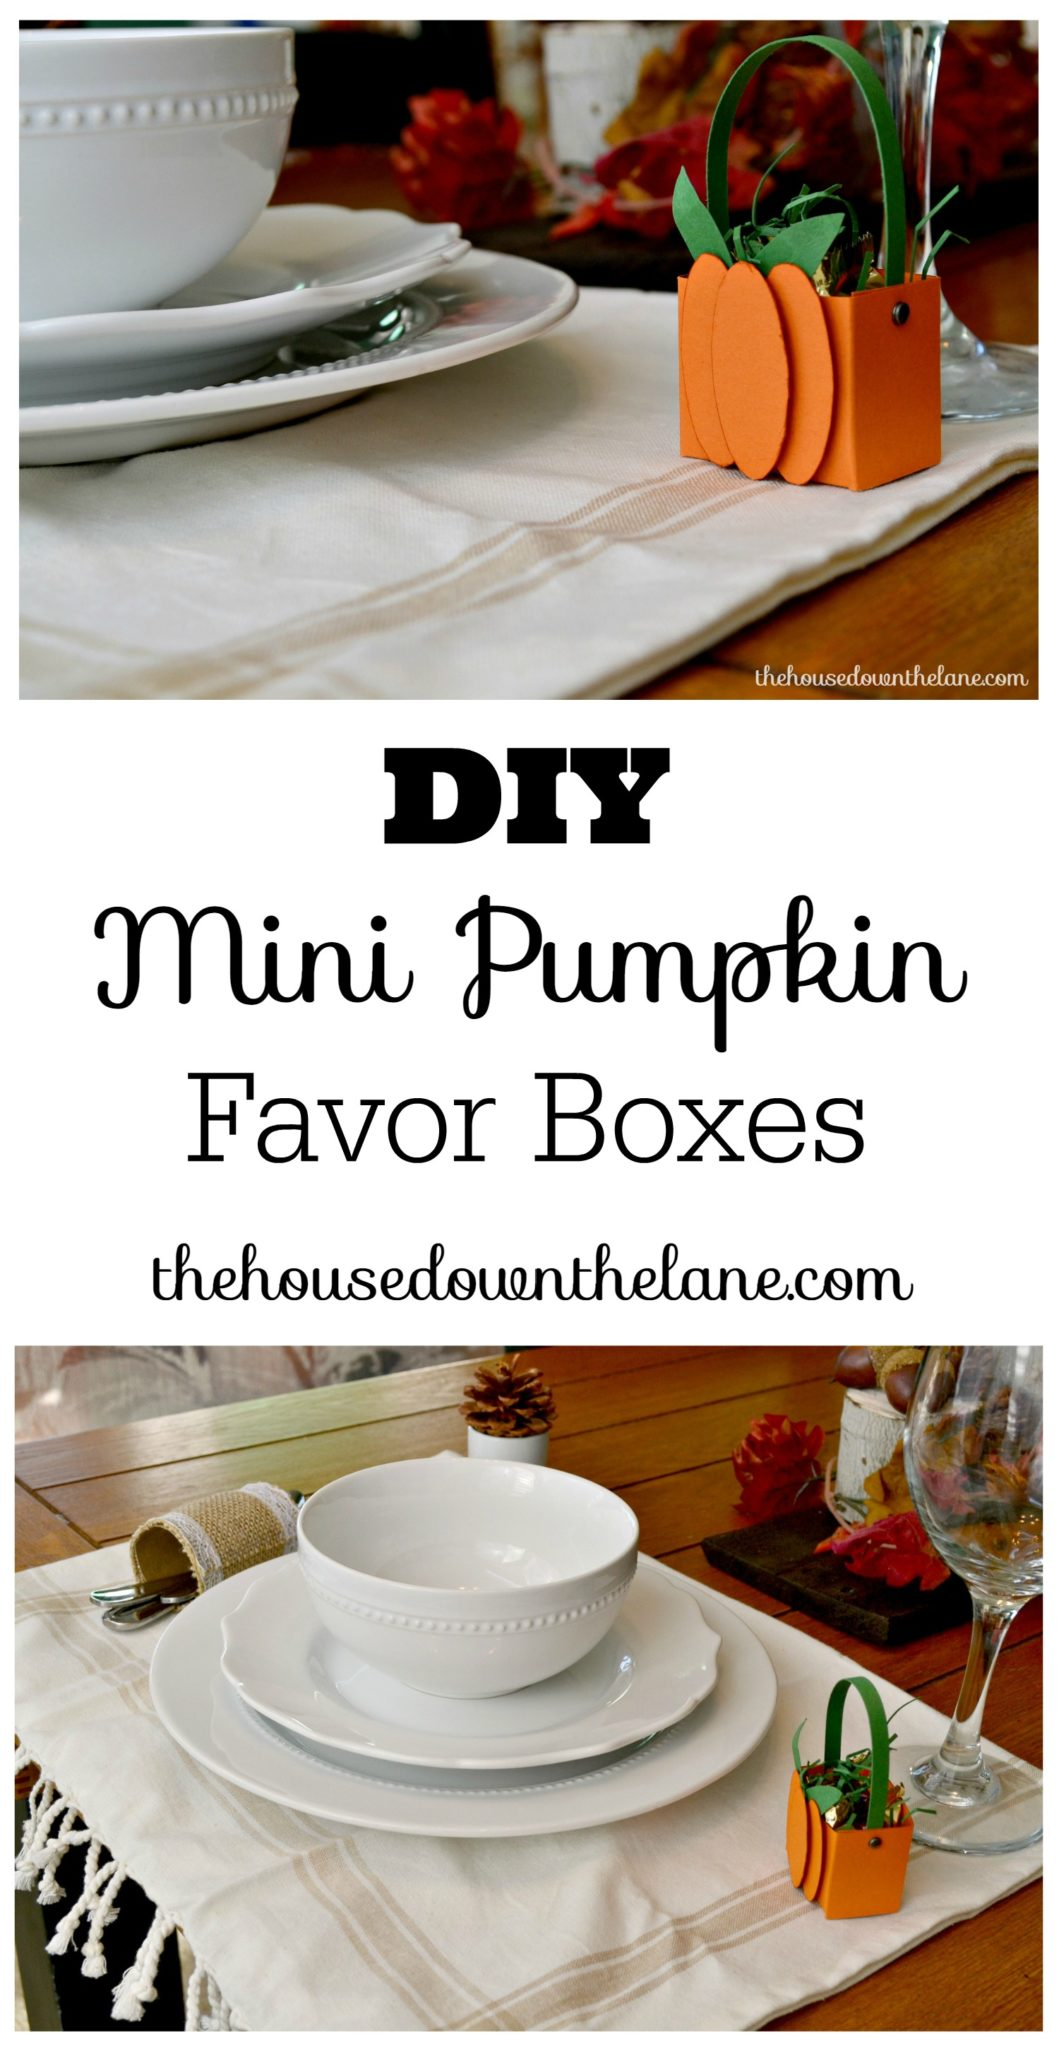 Create these DIY Mini Pumpkin Favor Boxes for the perfect little gift box or table decoration this Thanksgiving.